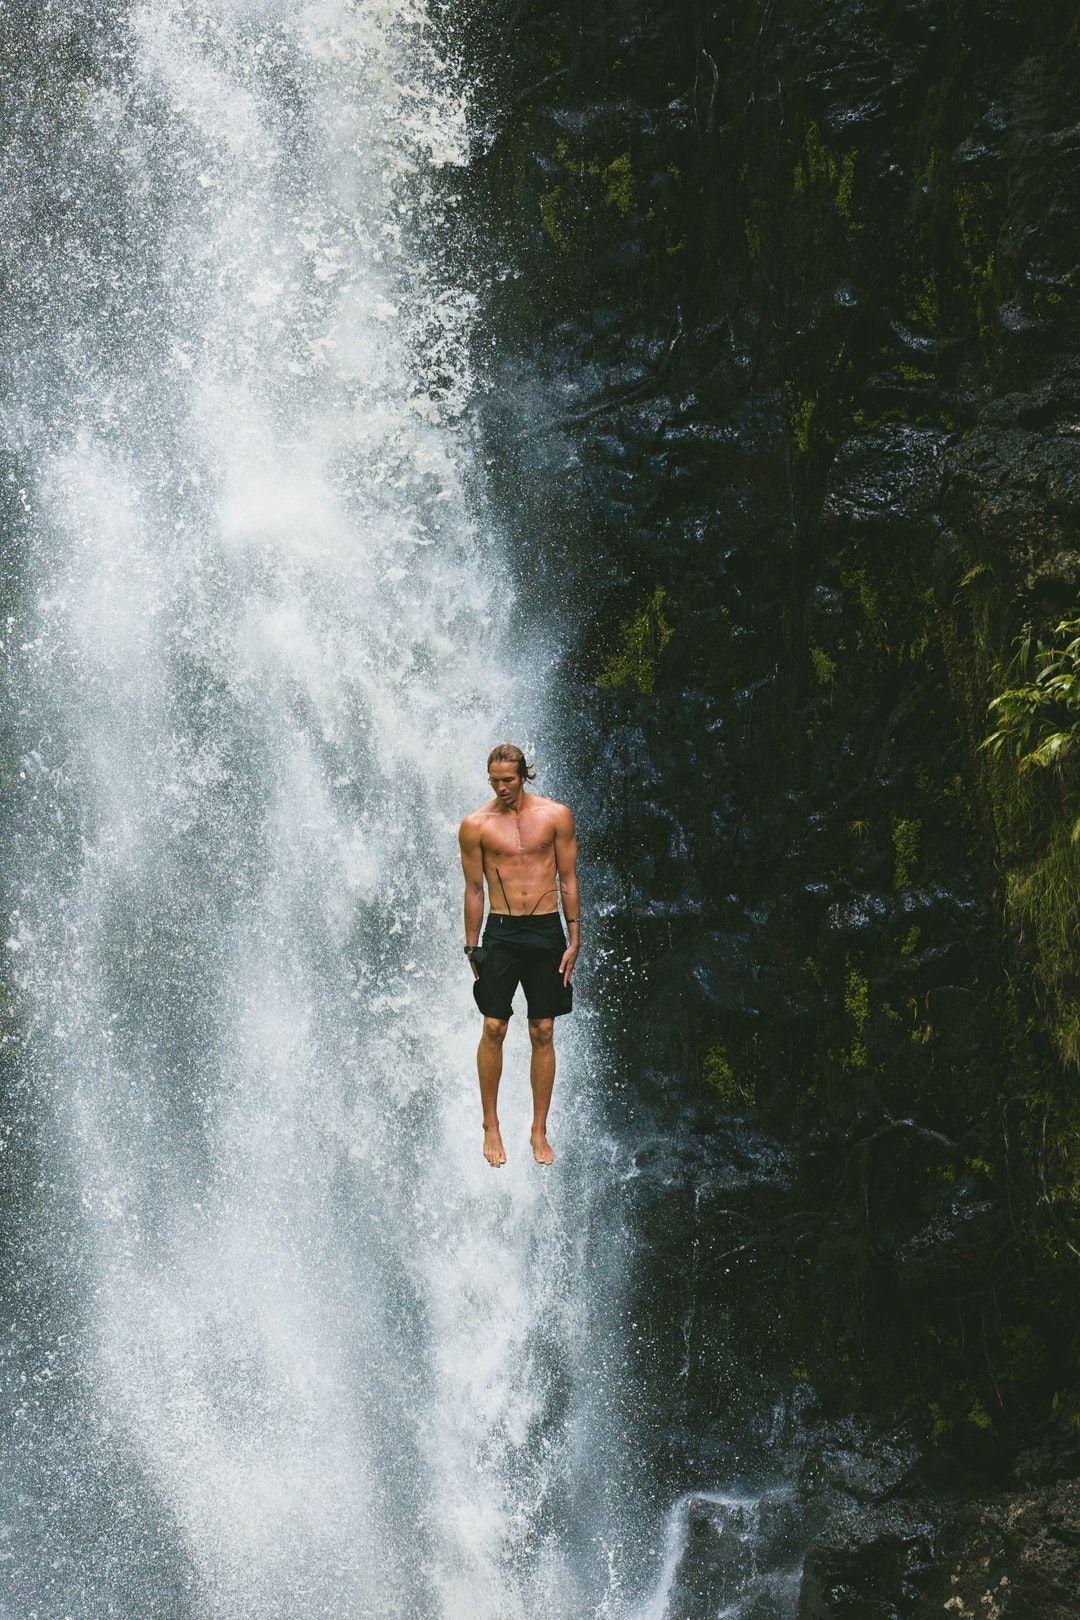 waterfall cliff jump